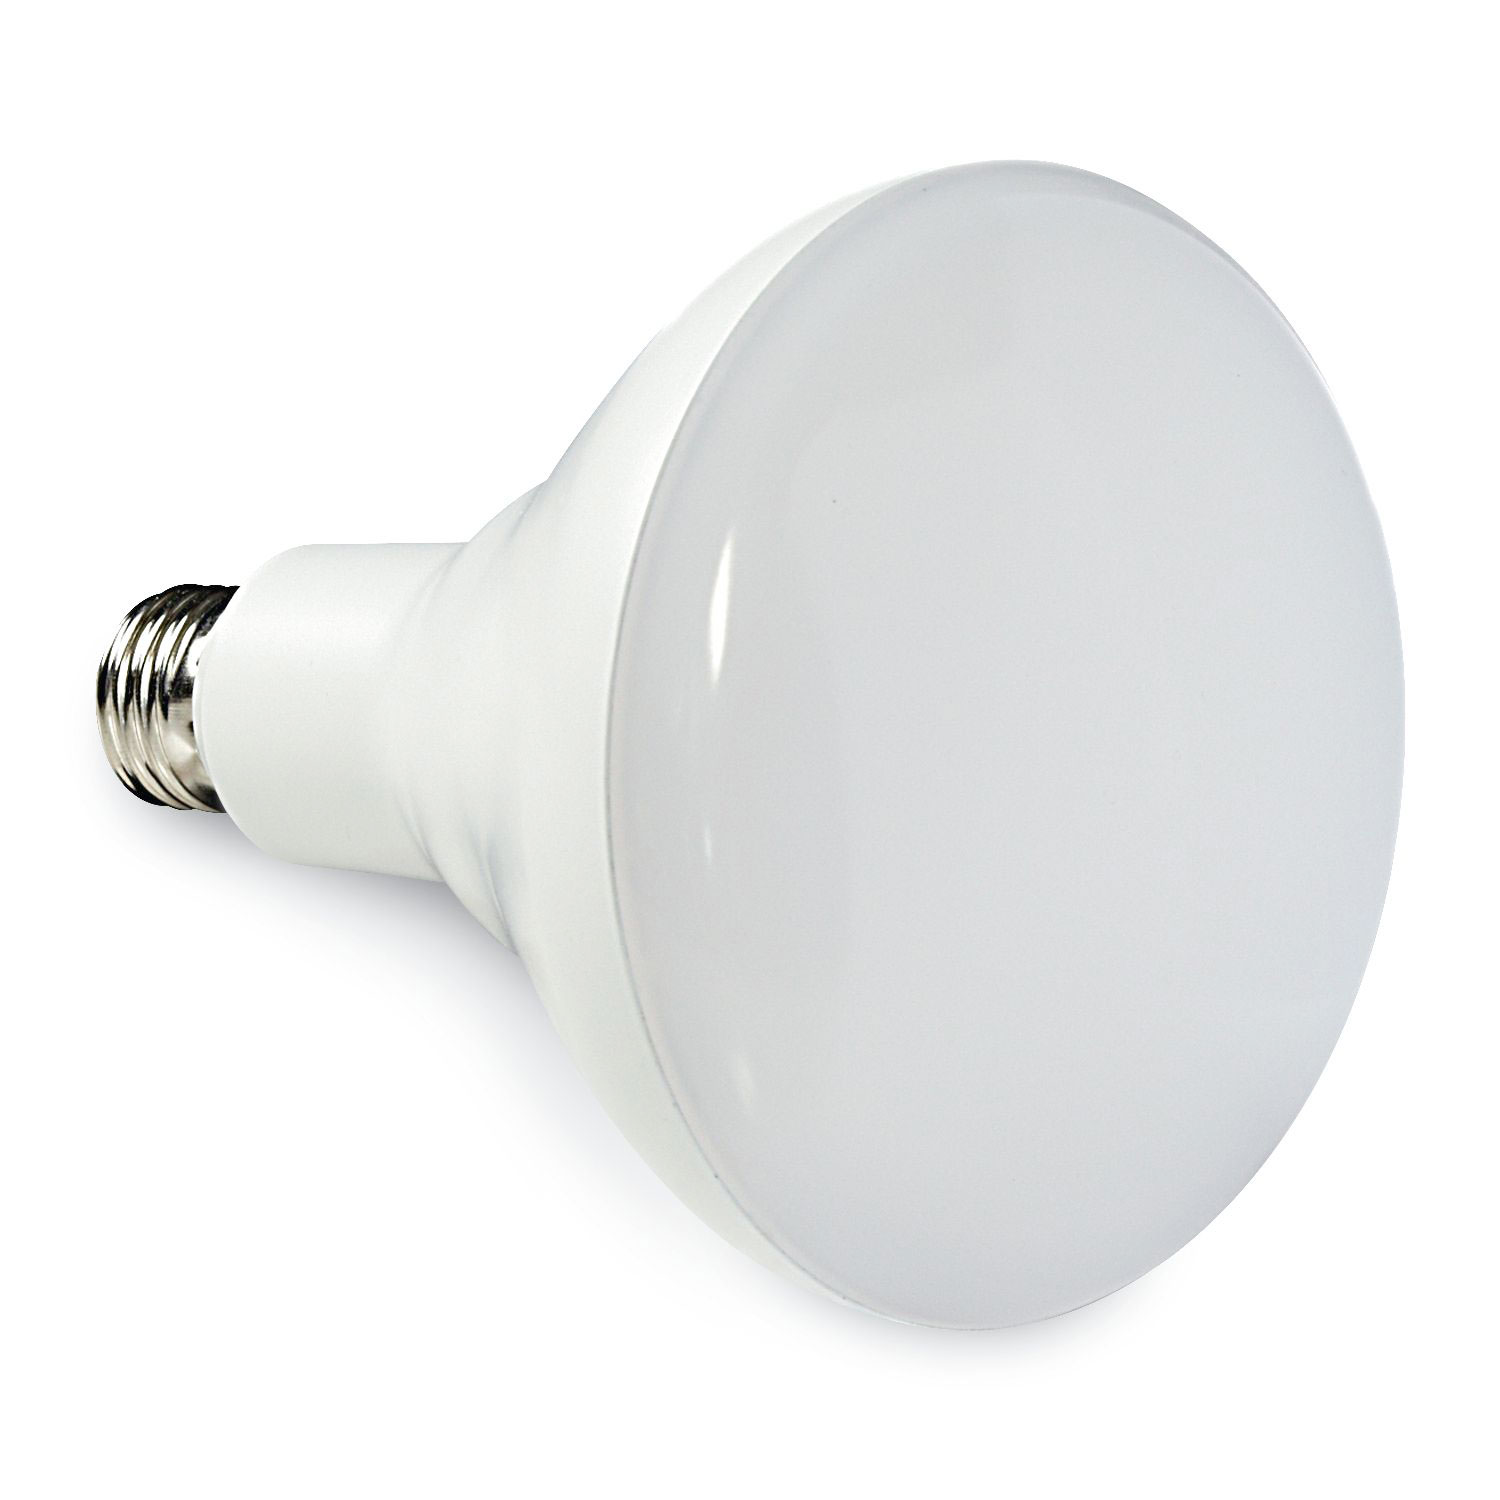 Verbatim, LED, BR40, Contour Series, White Warm,17W, 3000K, R40-L1200-C30-W, Dimmable